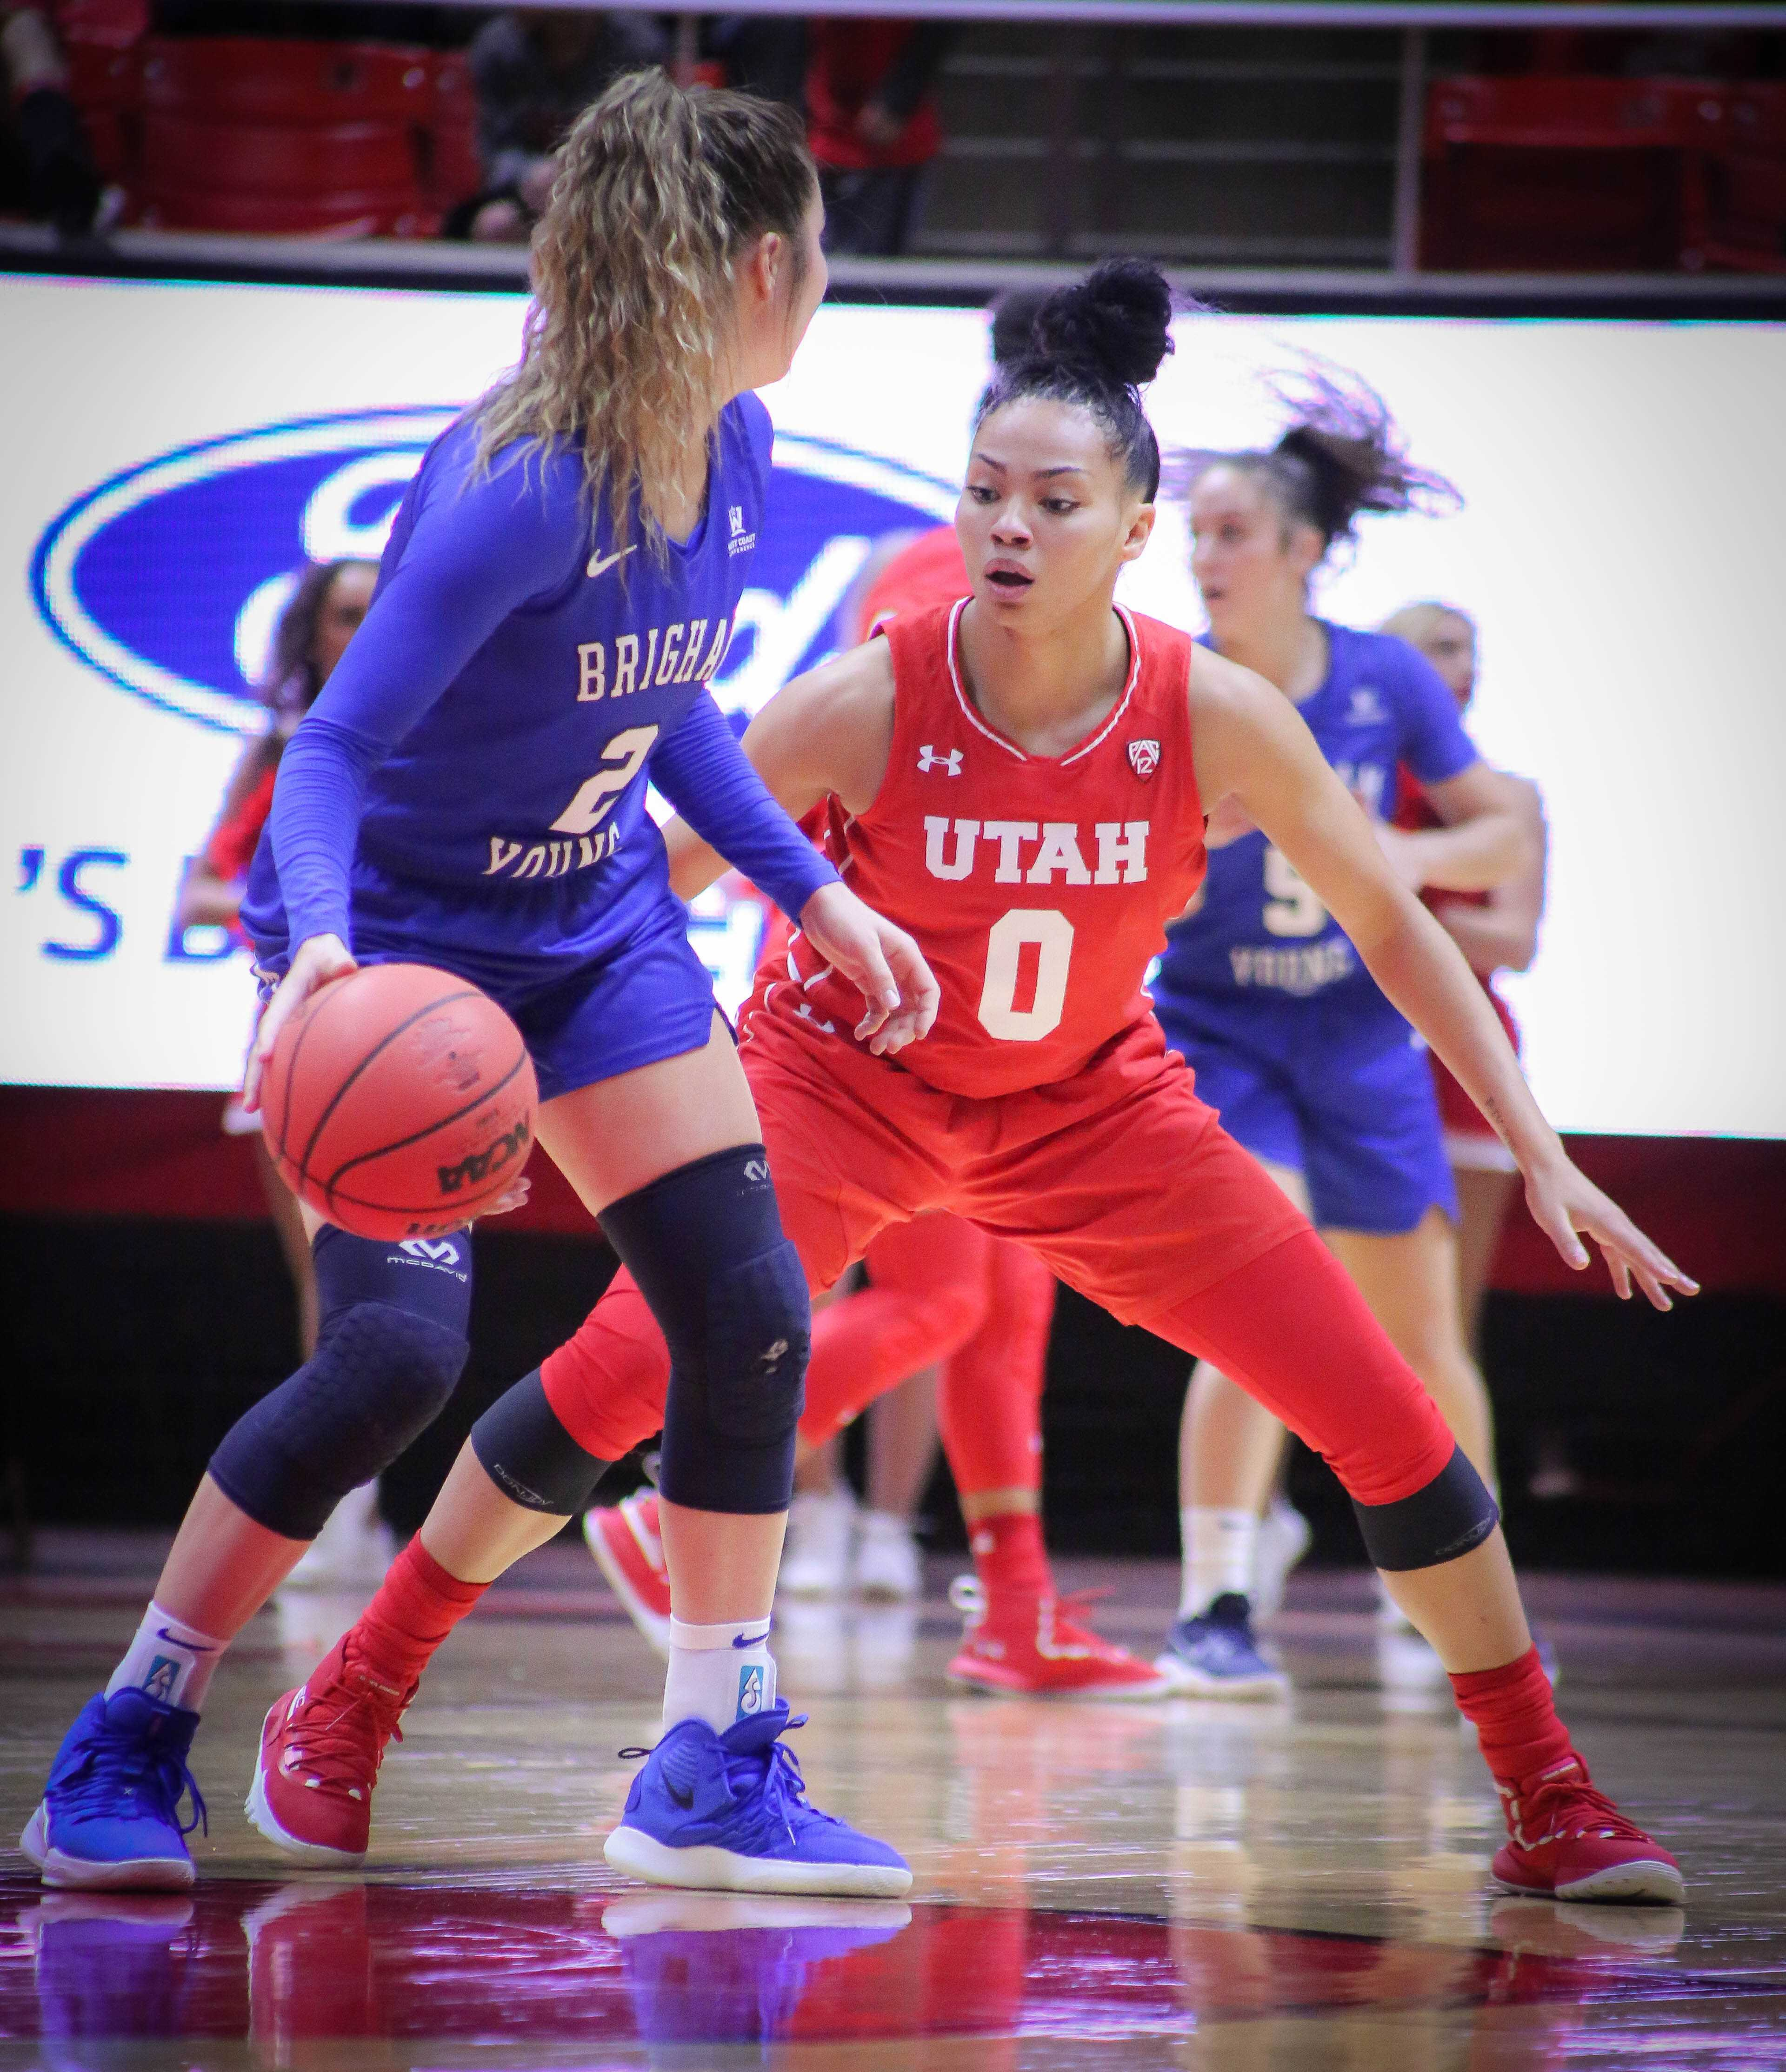 KIANA MOORE (0) defends her opponent as The University of Utah Lady Utes take on Brigham Young University at the Huntsman Center in Salt Lake City, UT on Saturaday, Dec. 8, 2018 (Photo by Cassandra Palor | Daily Utah Chronicle)